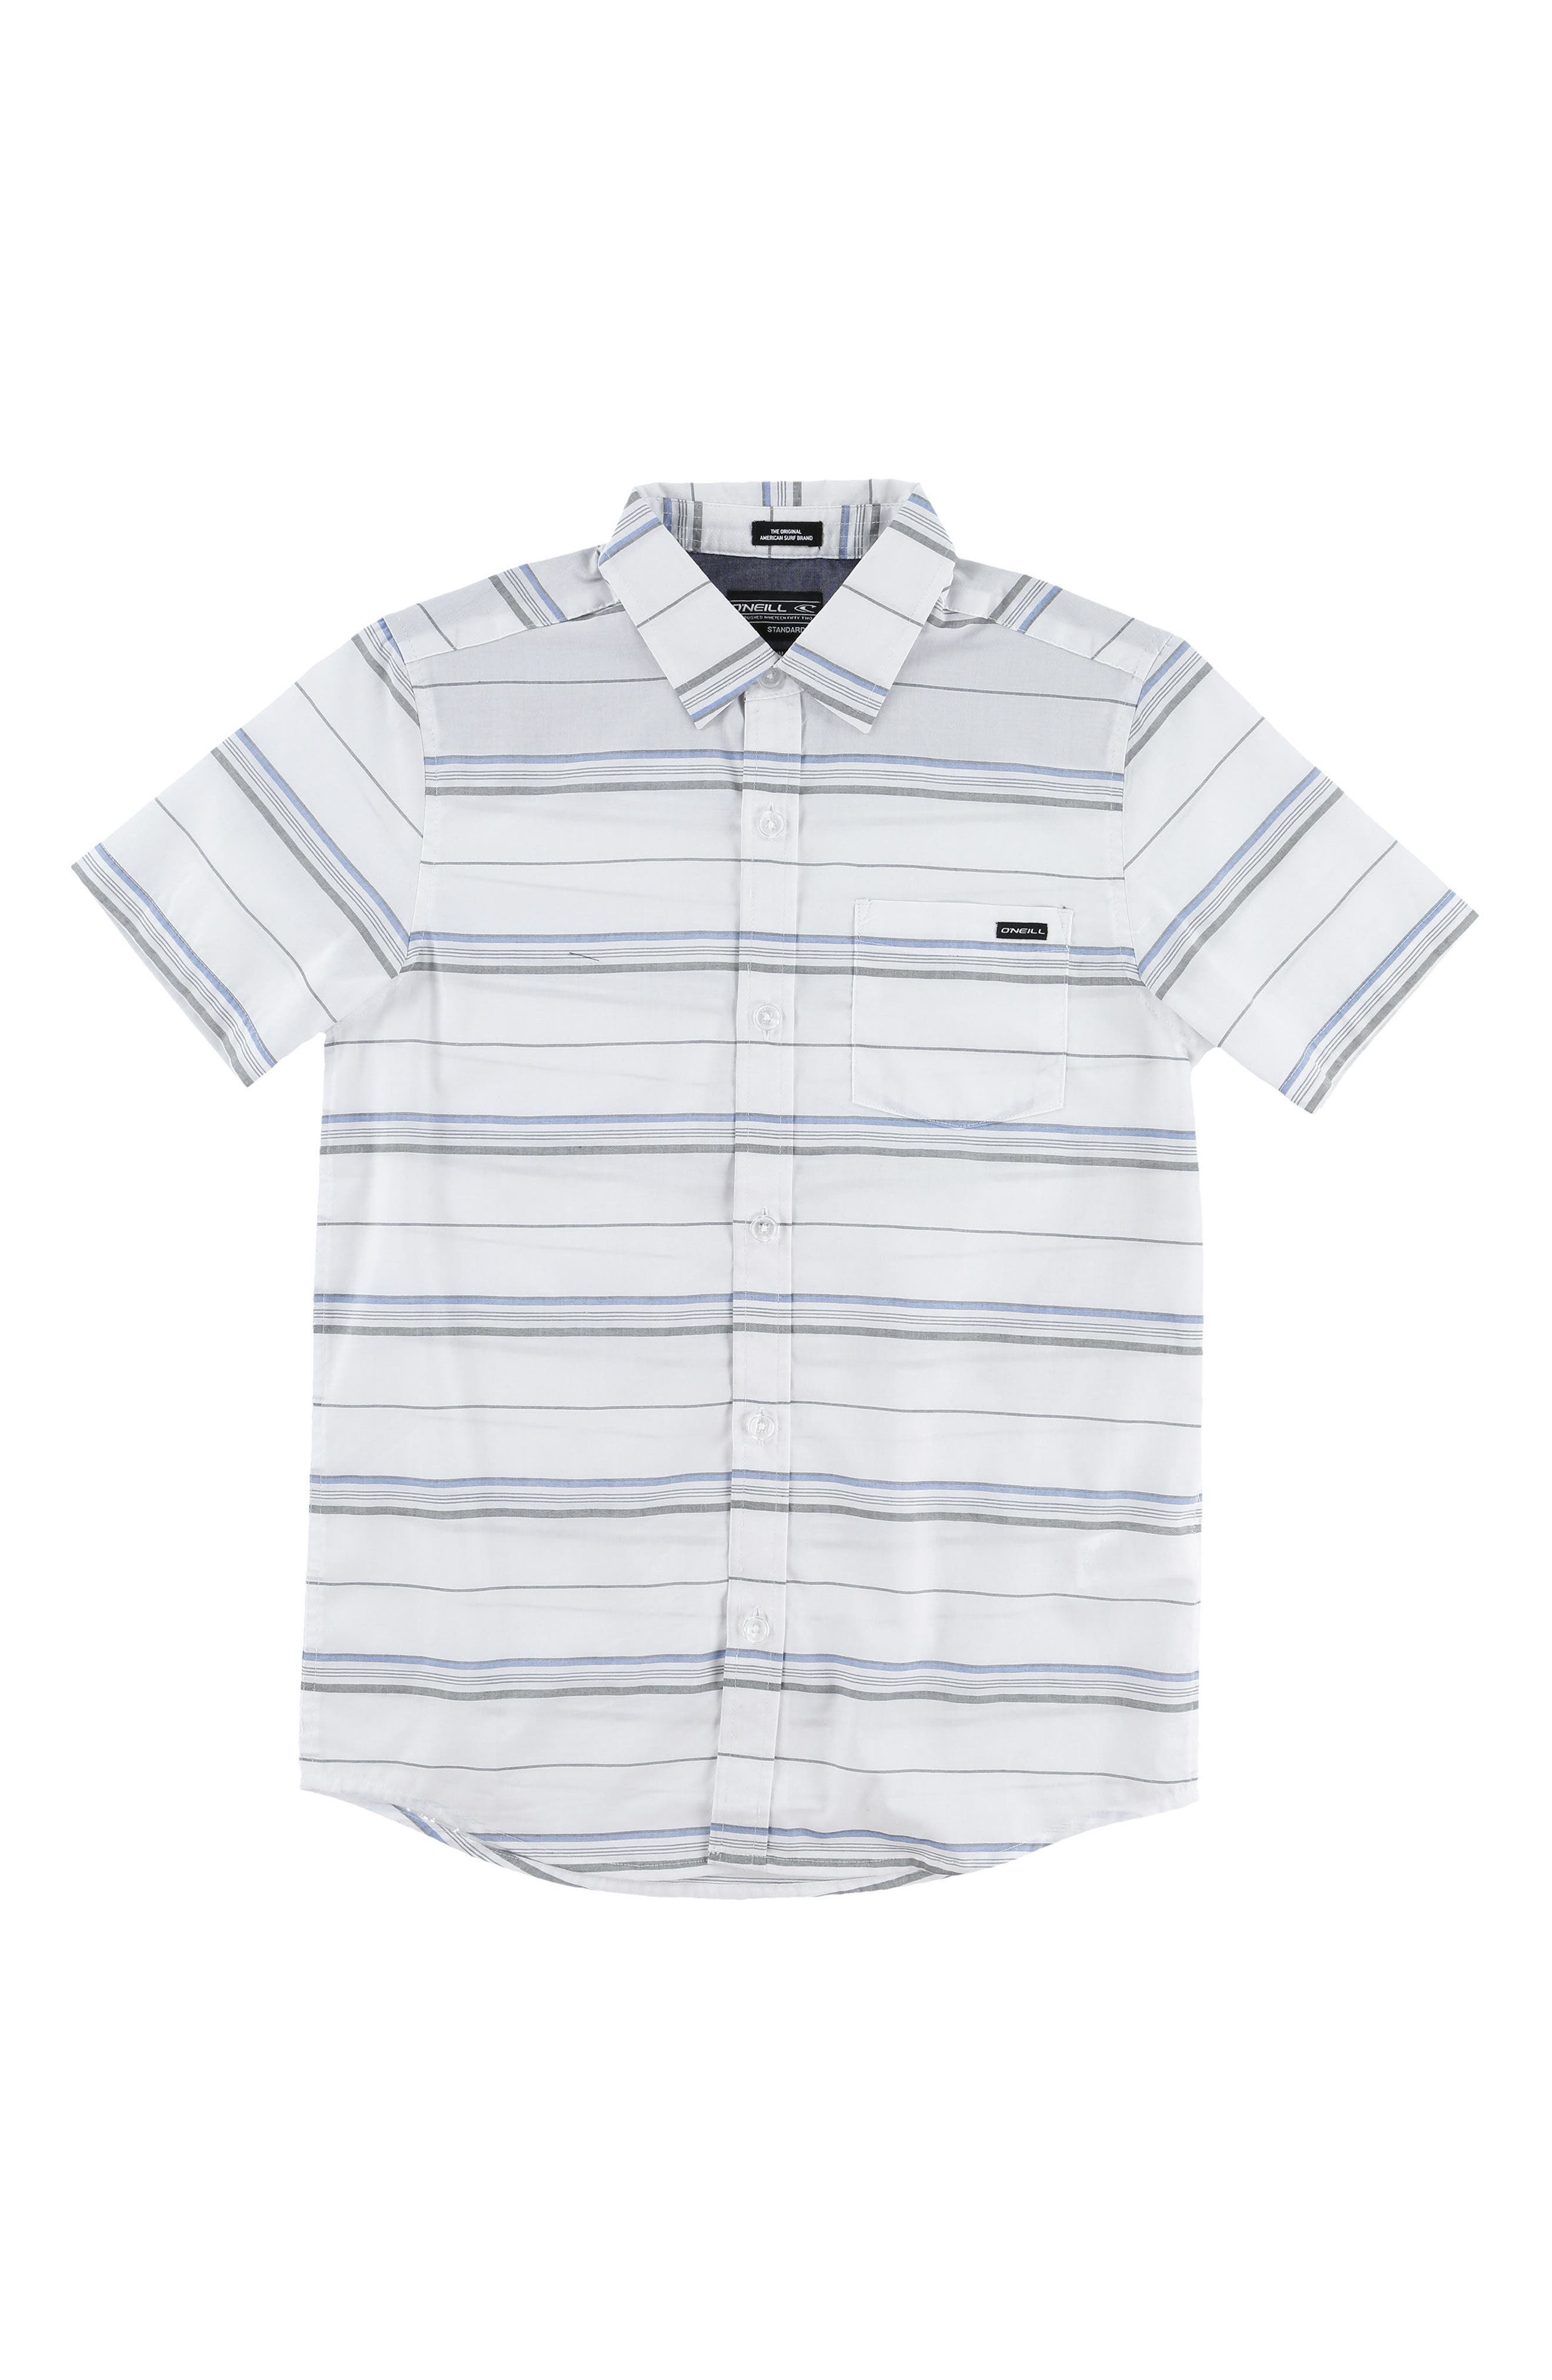 O'Neill Stripe Woven Shirt (Toddler Boys & Little Boys)